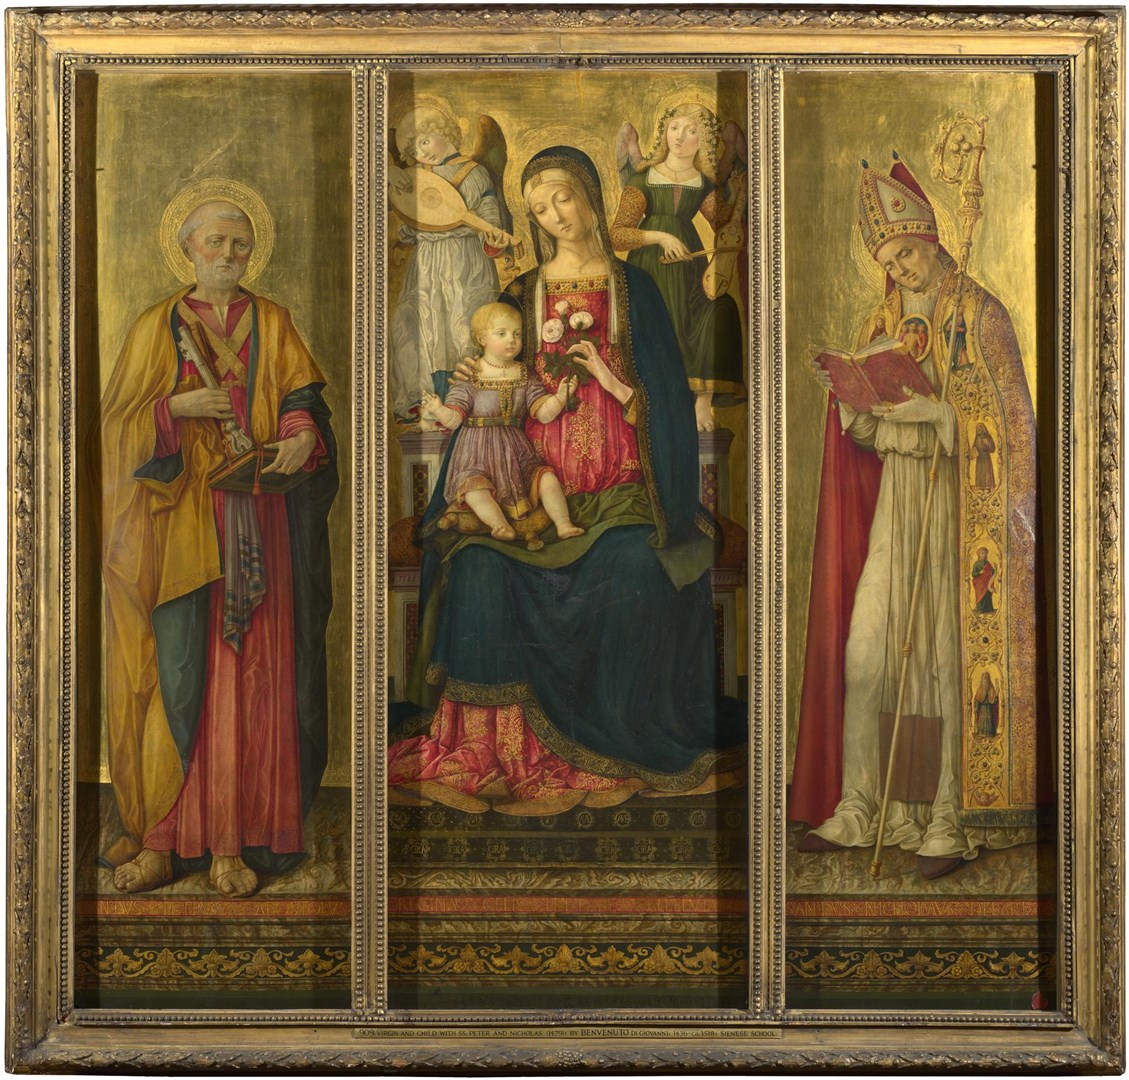 Altarpiece: The Virgin and Child with Saints by Benvenuto di Giovanni